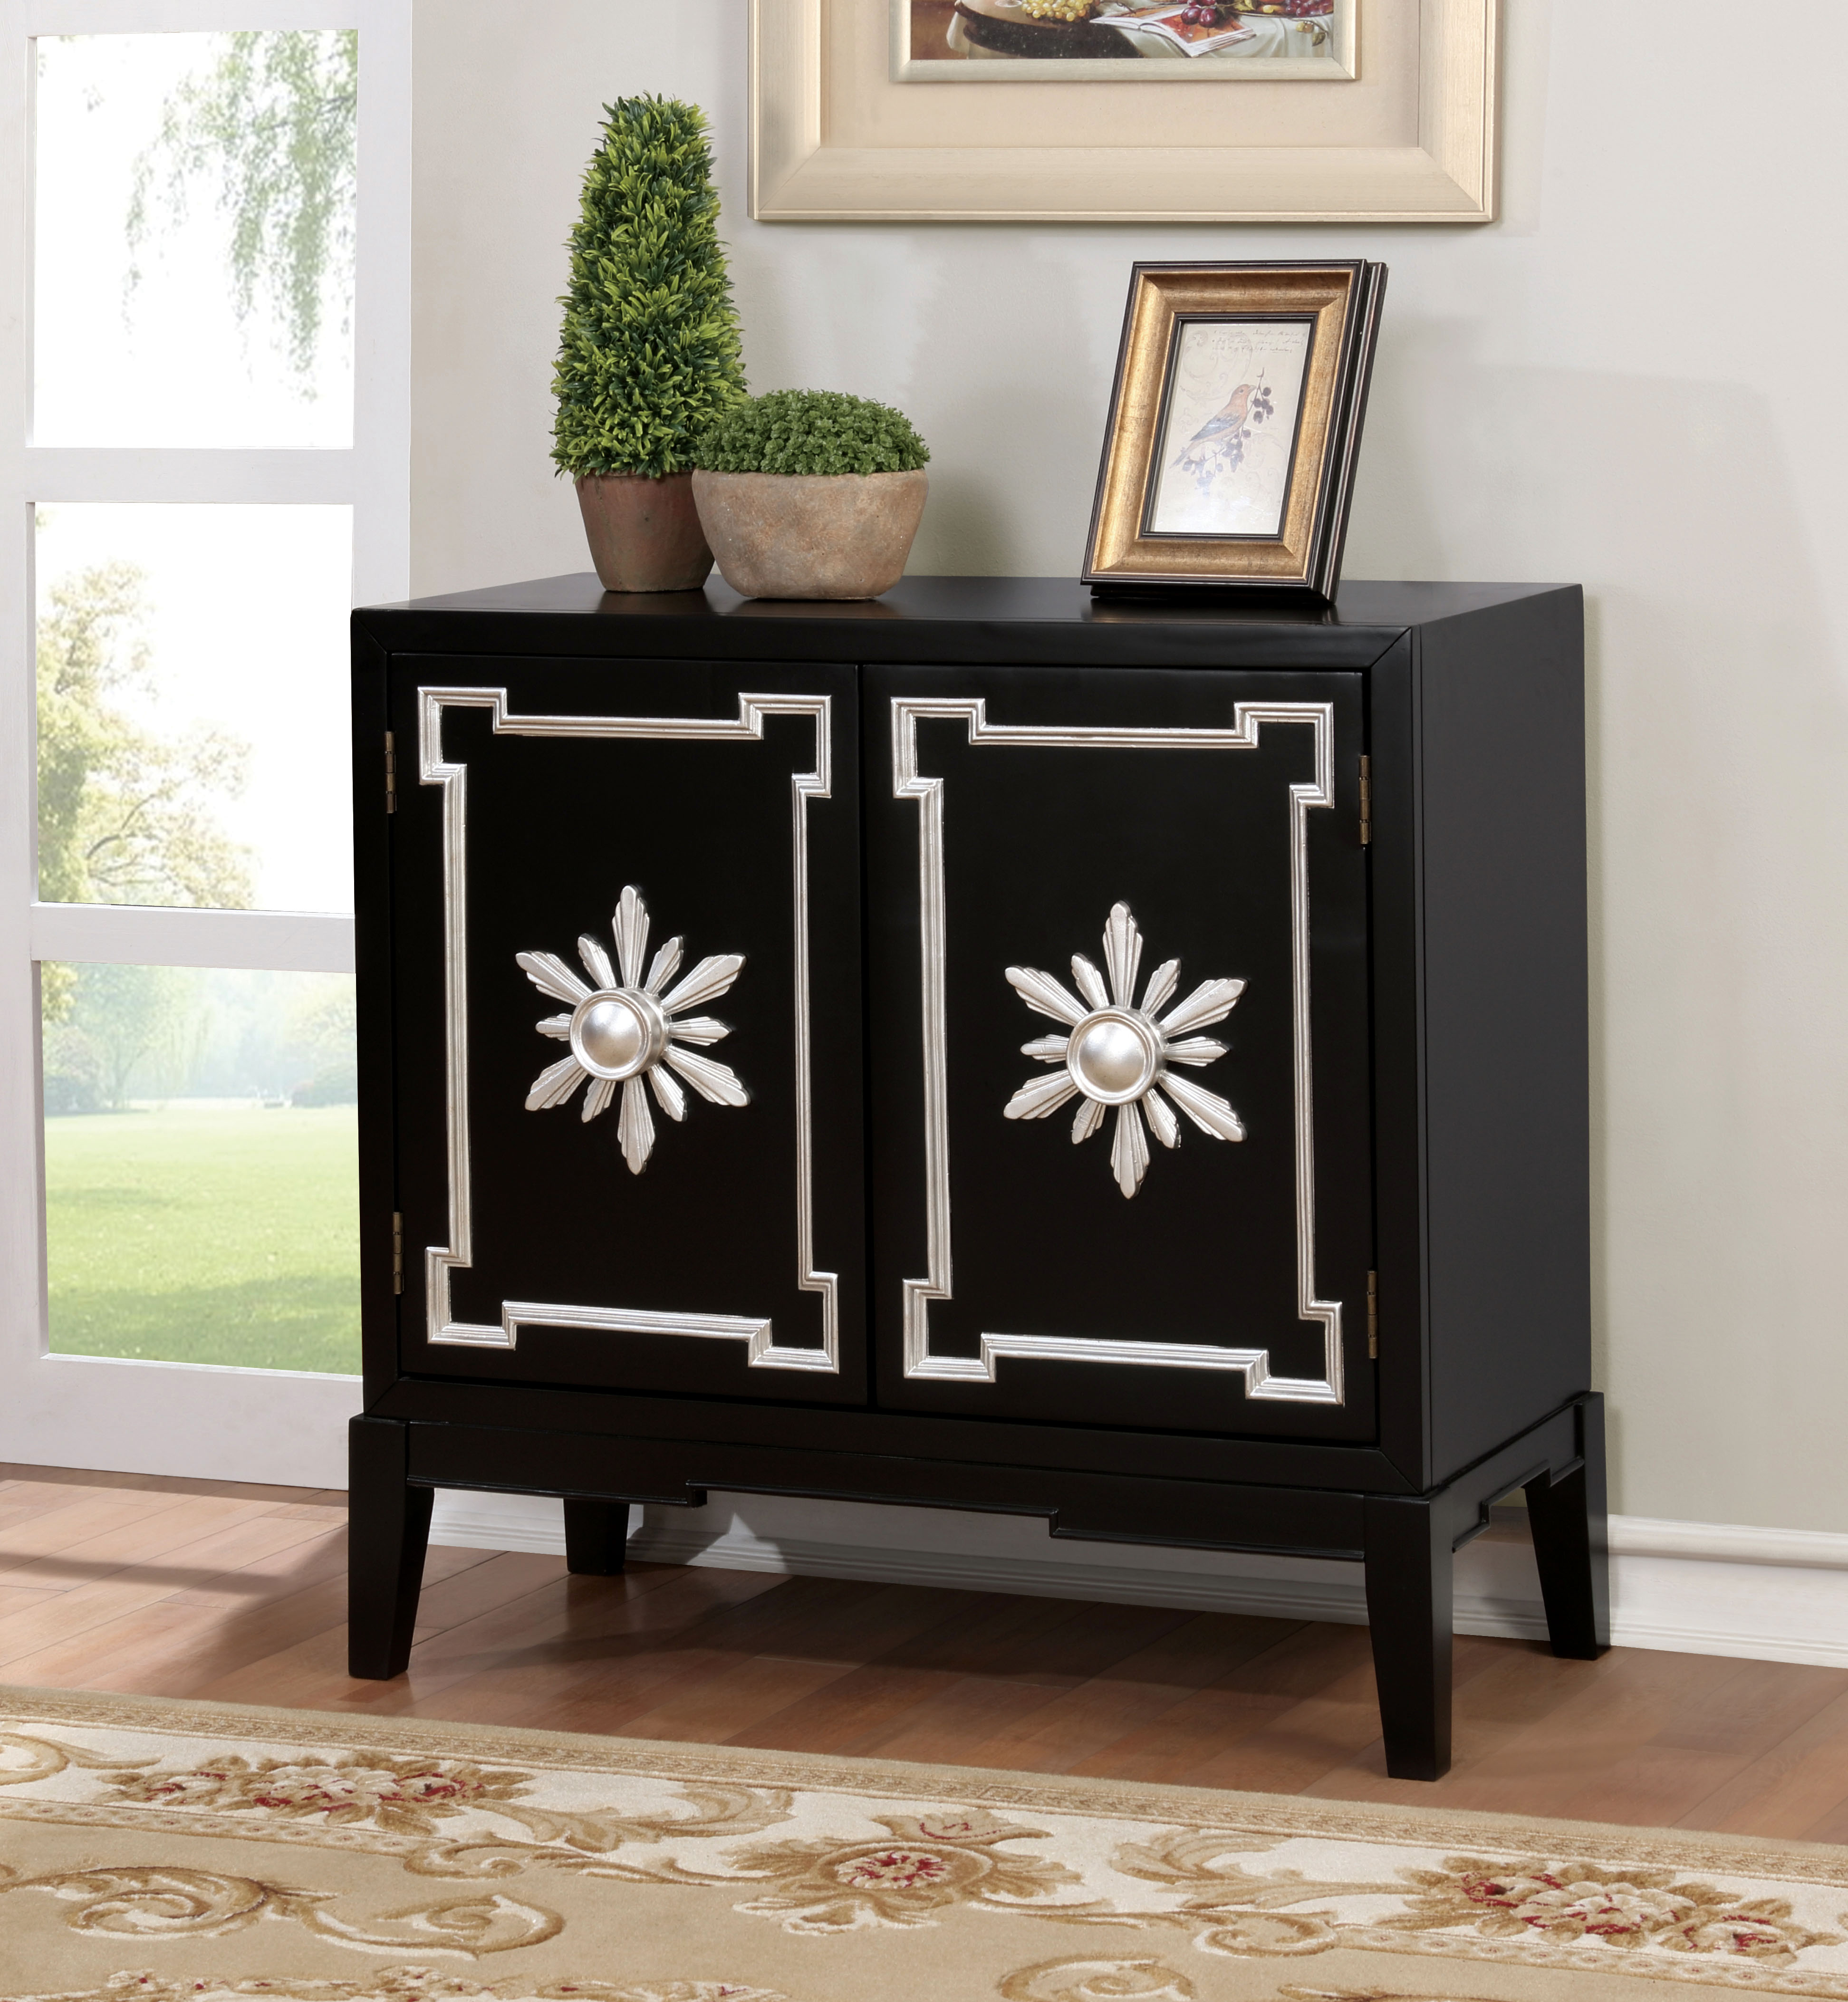 Furniture of America Suny Vintage Hallway Chest, Multiple Colors